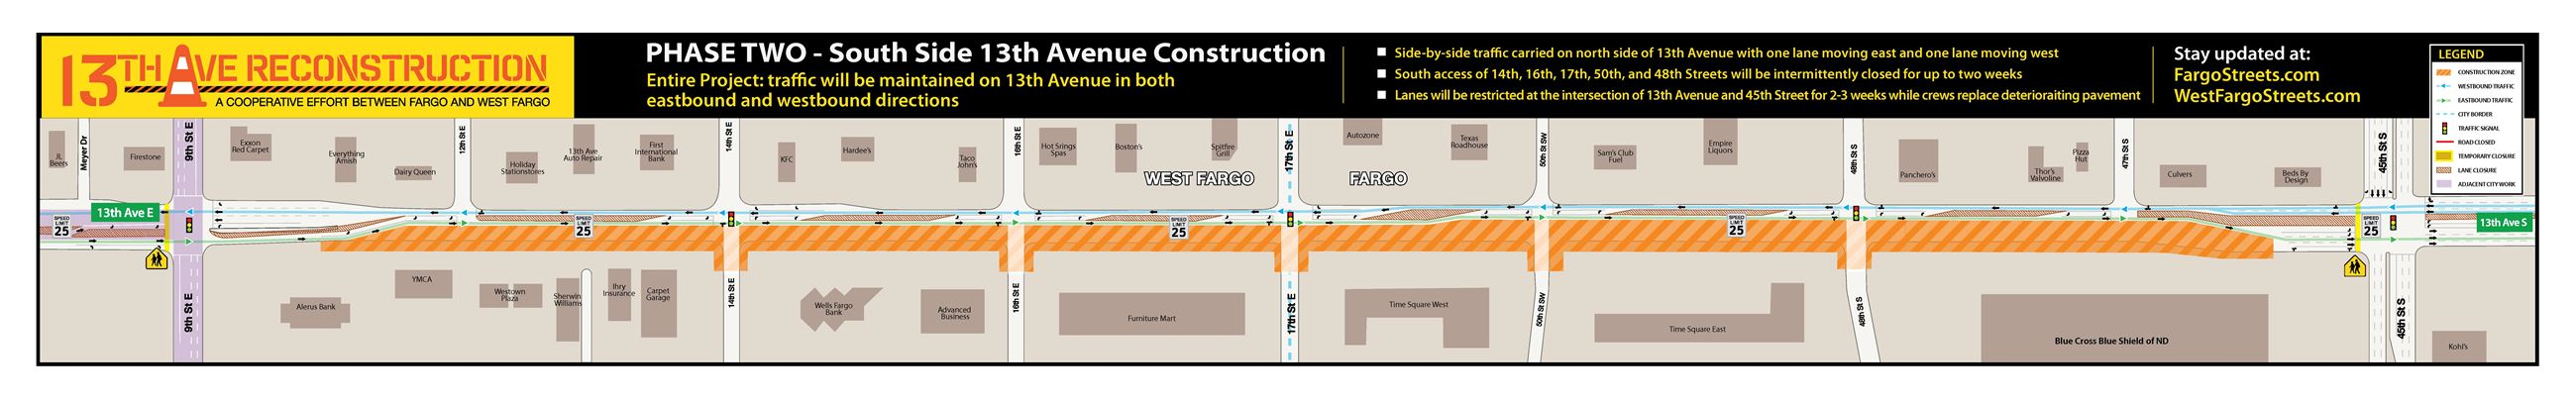 13th Avenue Reconstruction Phase2 traffic map